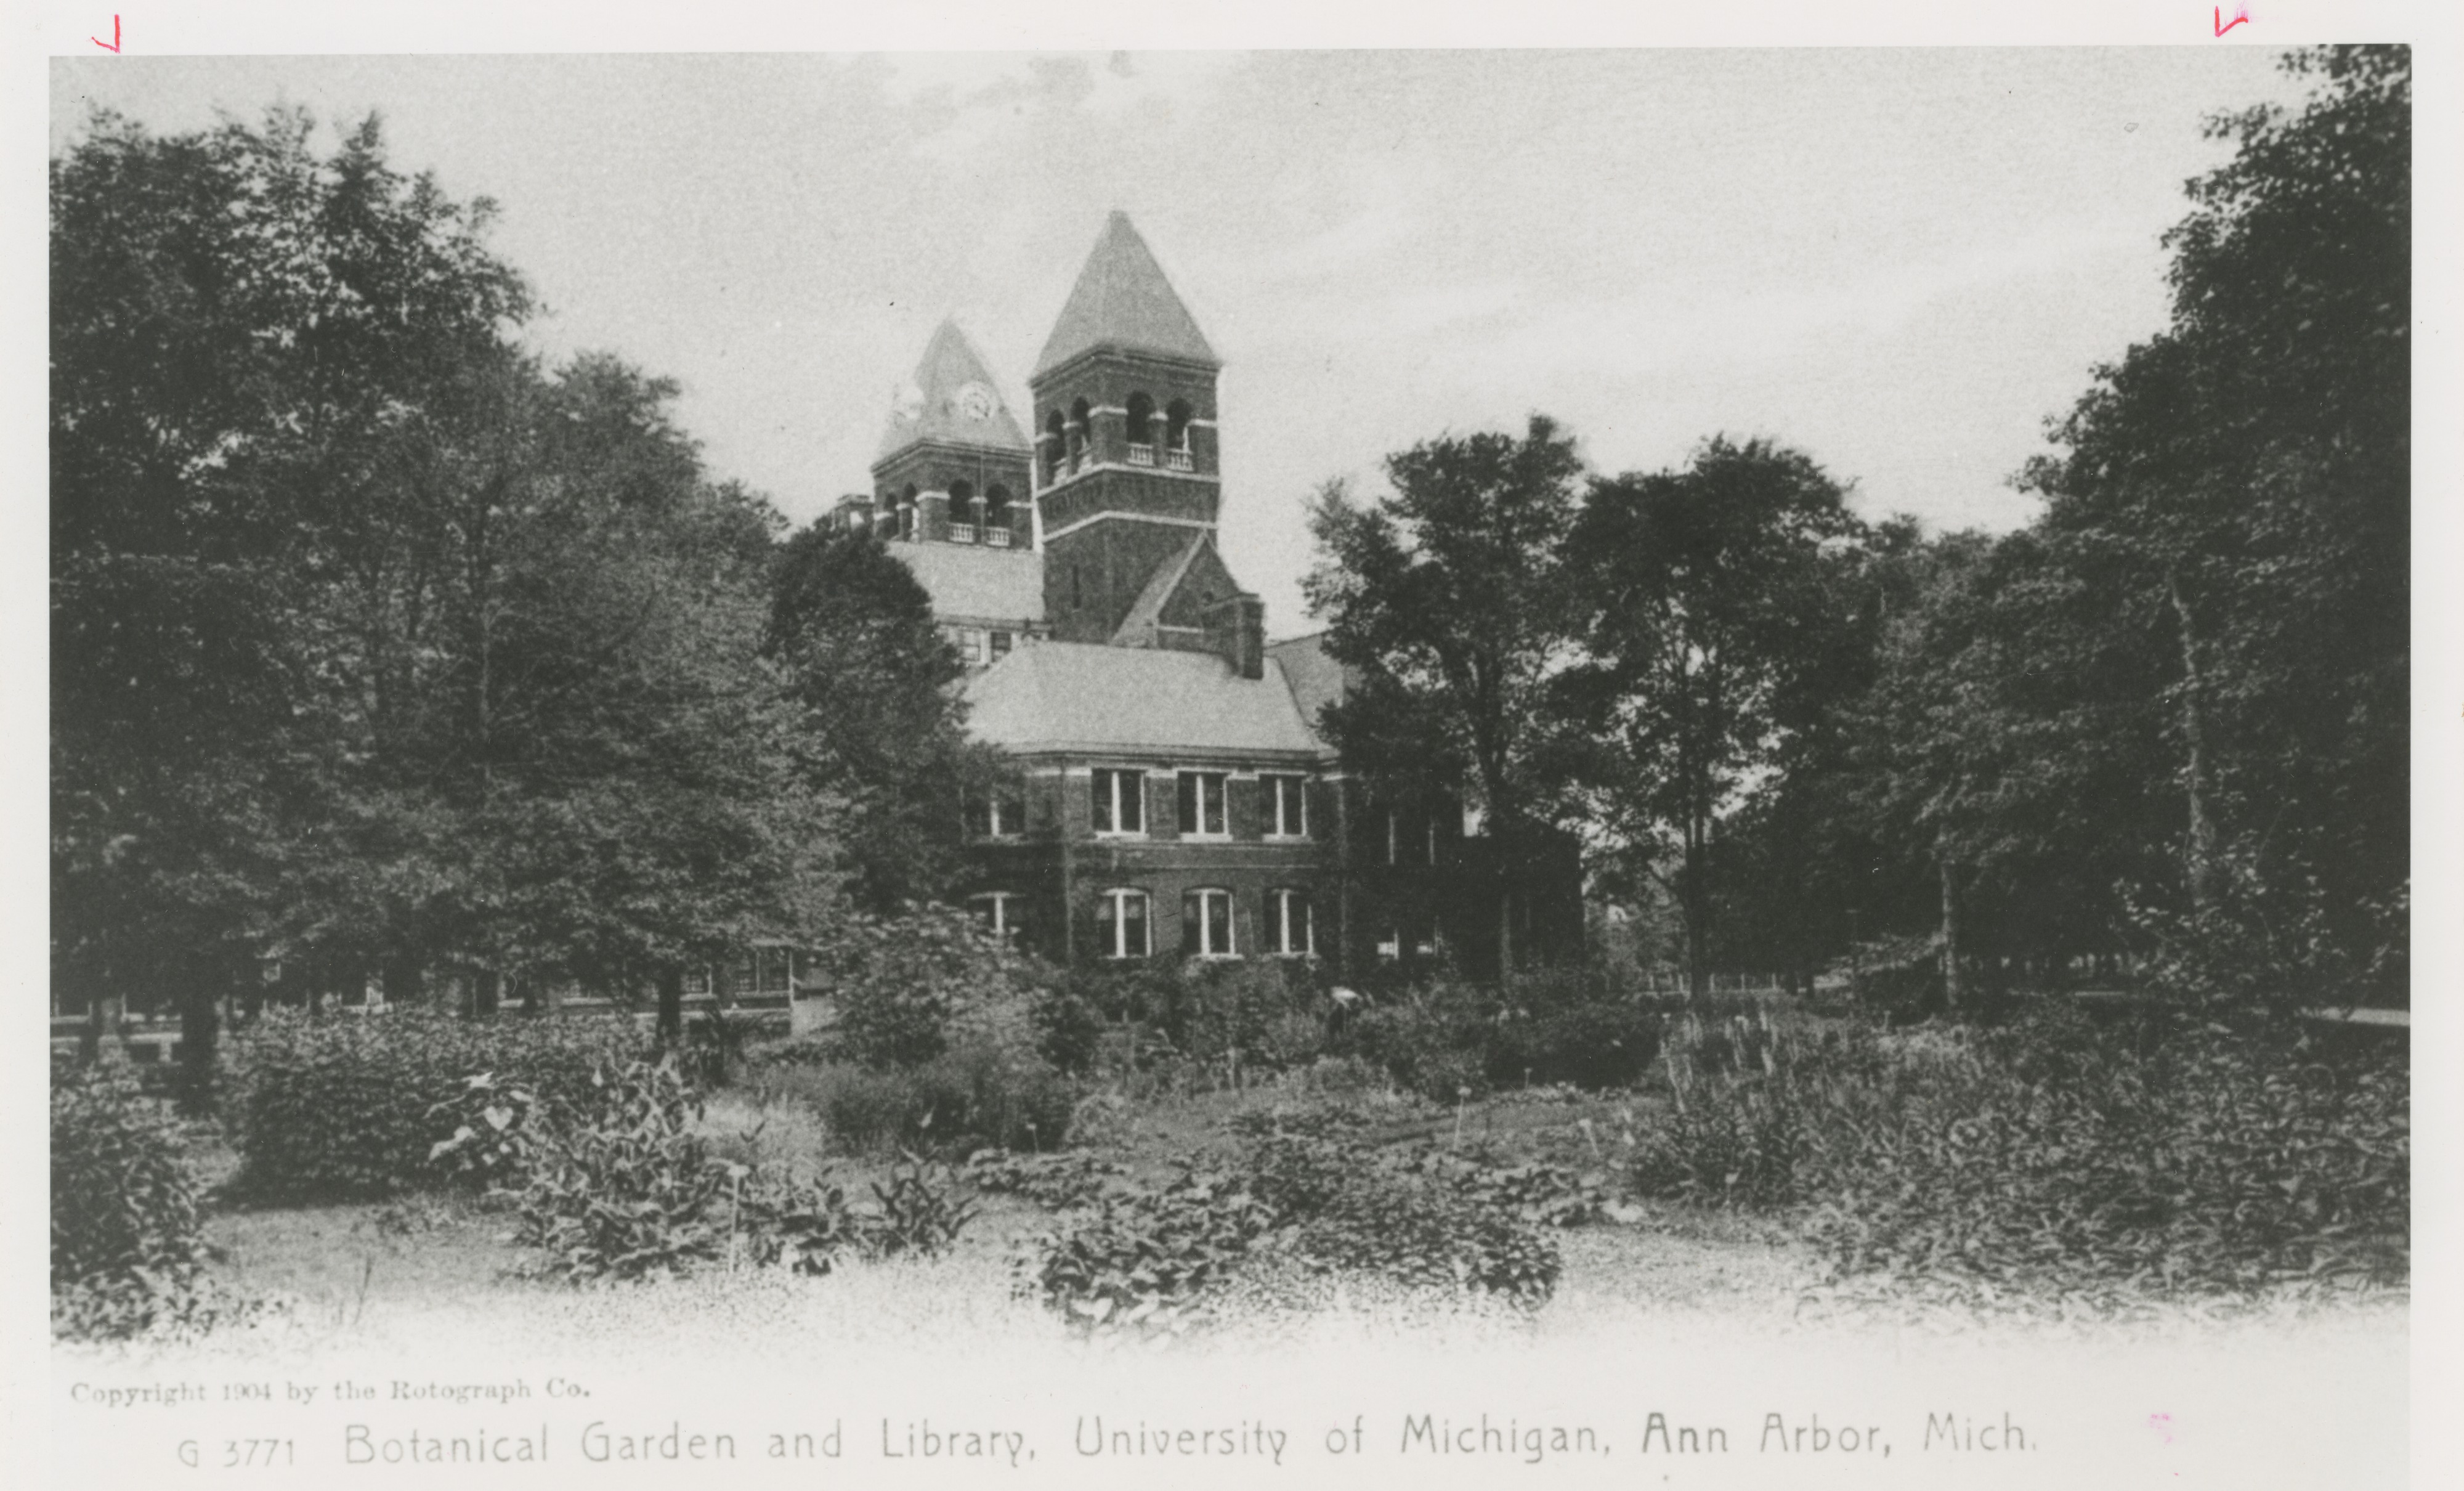 University Of Michigan Botanical Garden And Library 1904 Ann Arbor District Library